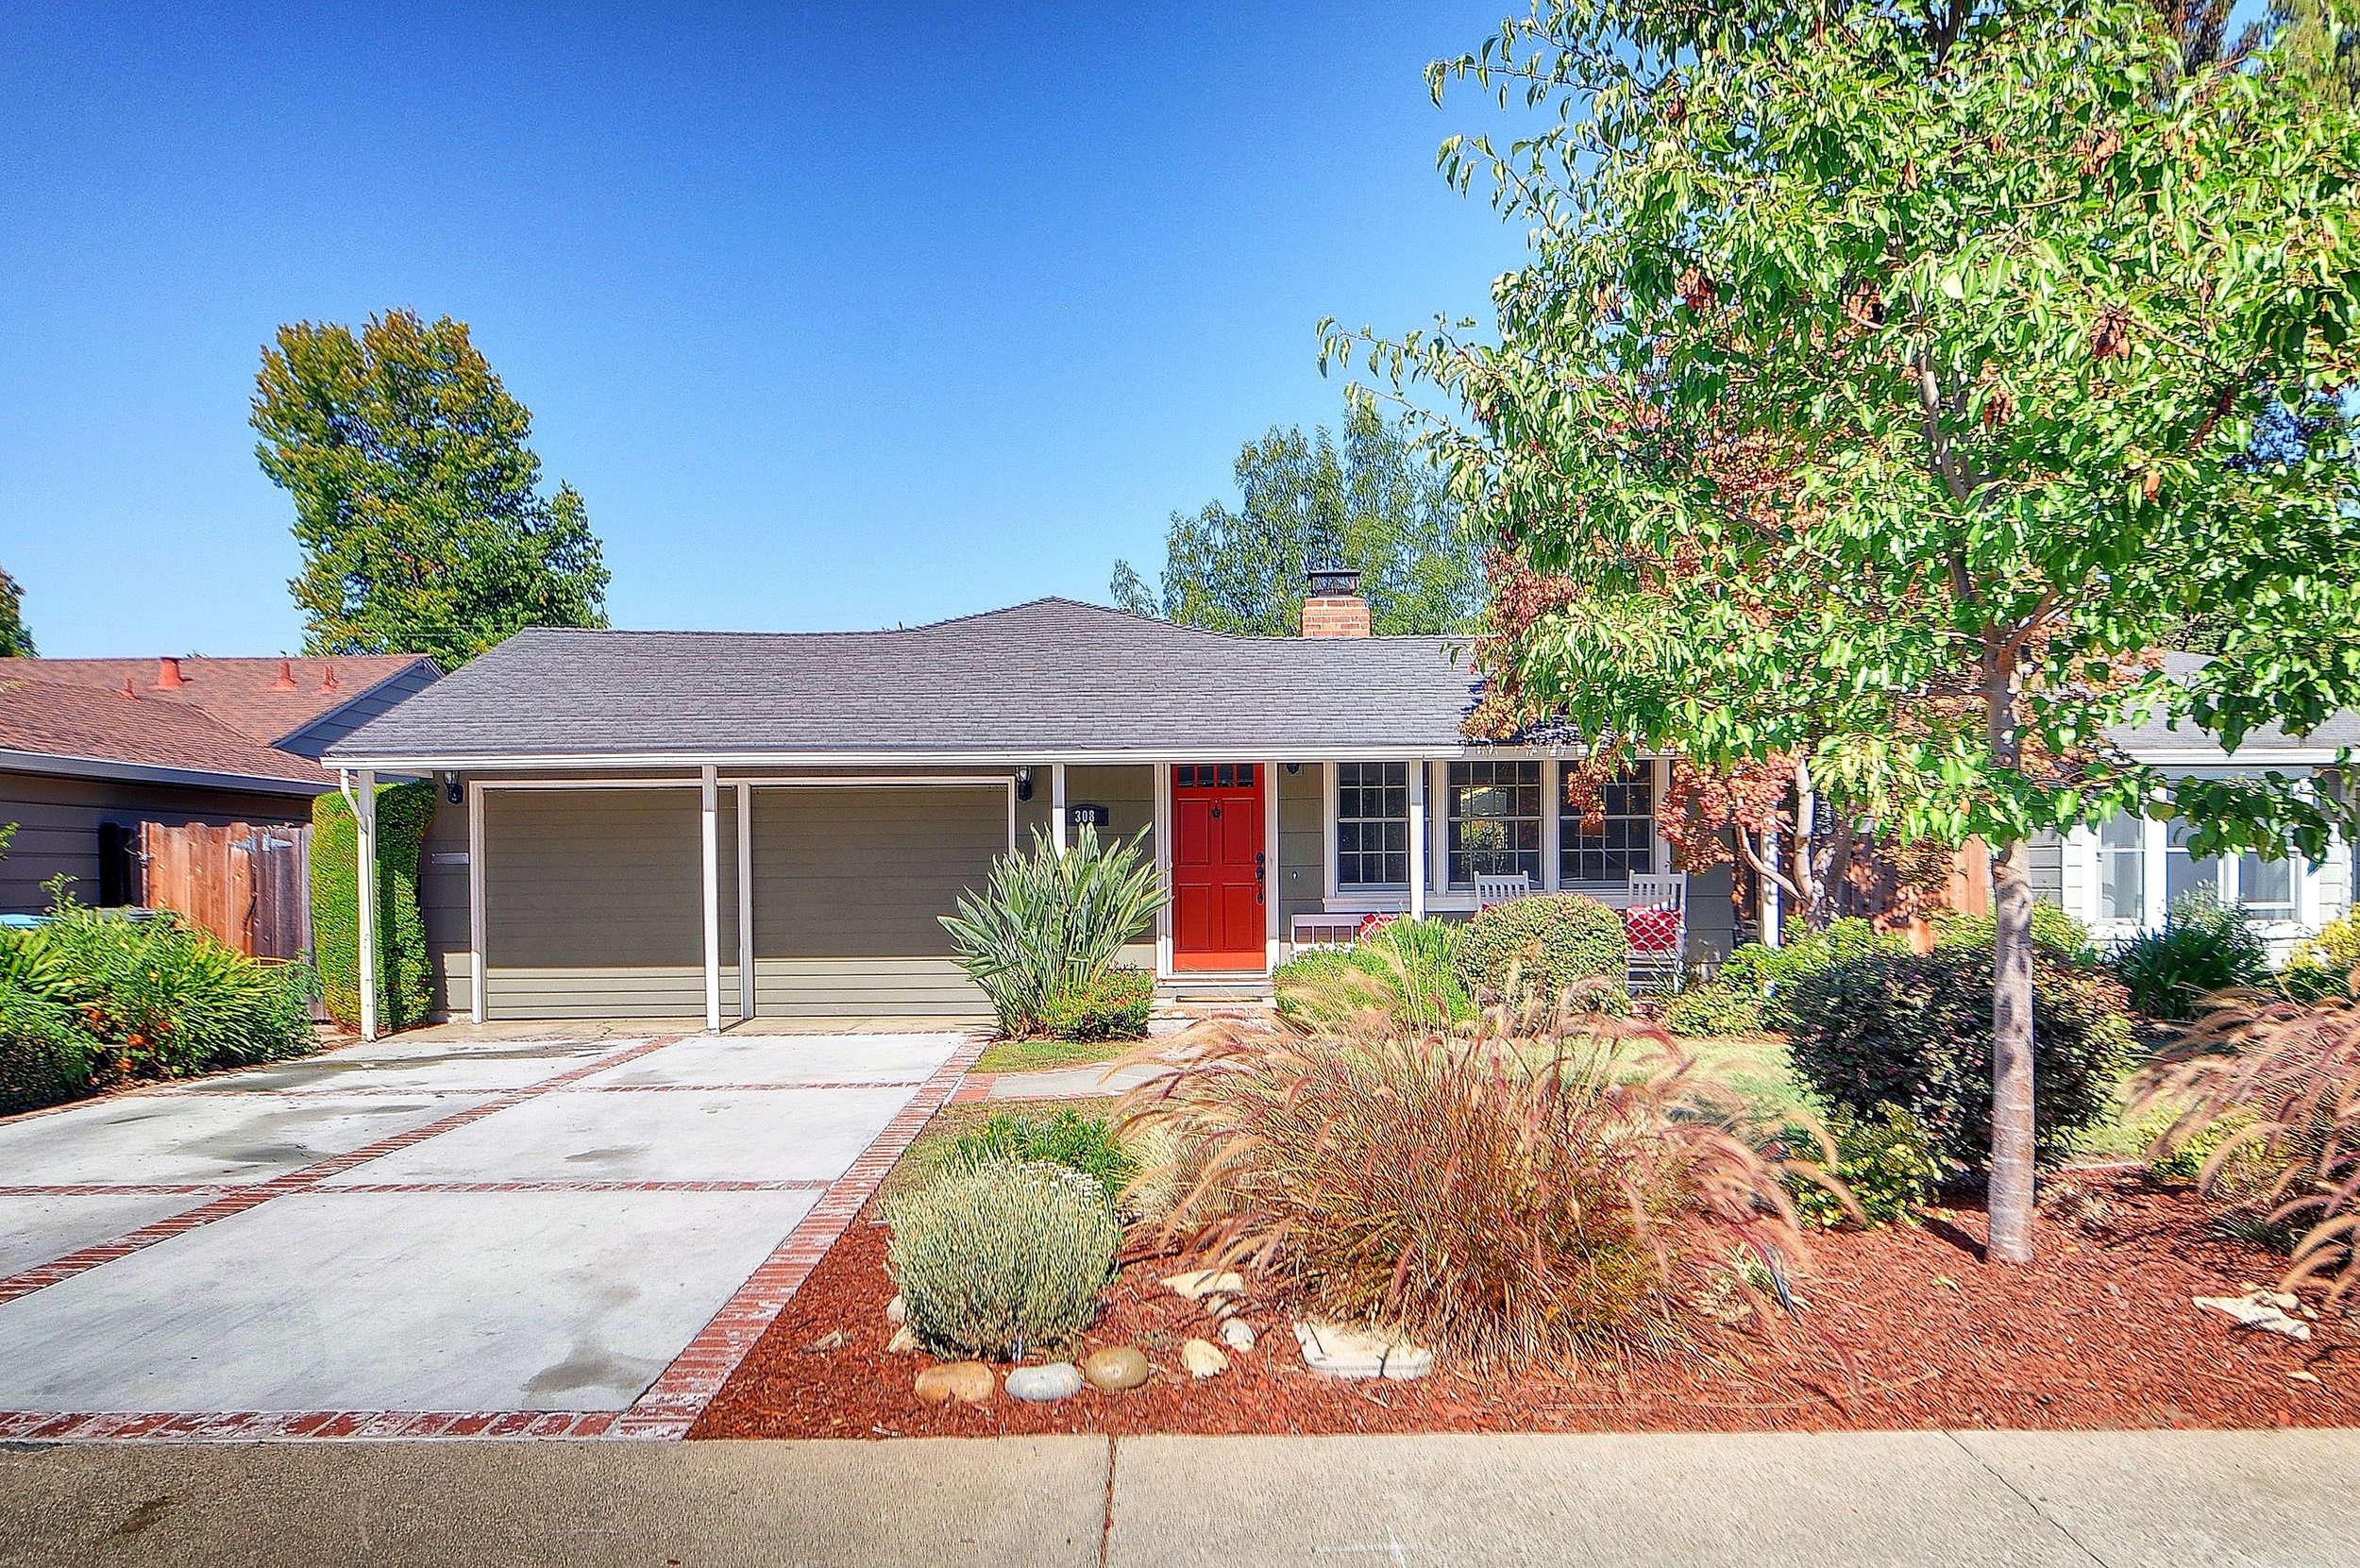 SOLD:  308 Hedge Rd, Menlo Park  Open floor plan with bonus play room - ideal family home  Offered at $1,495,000